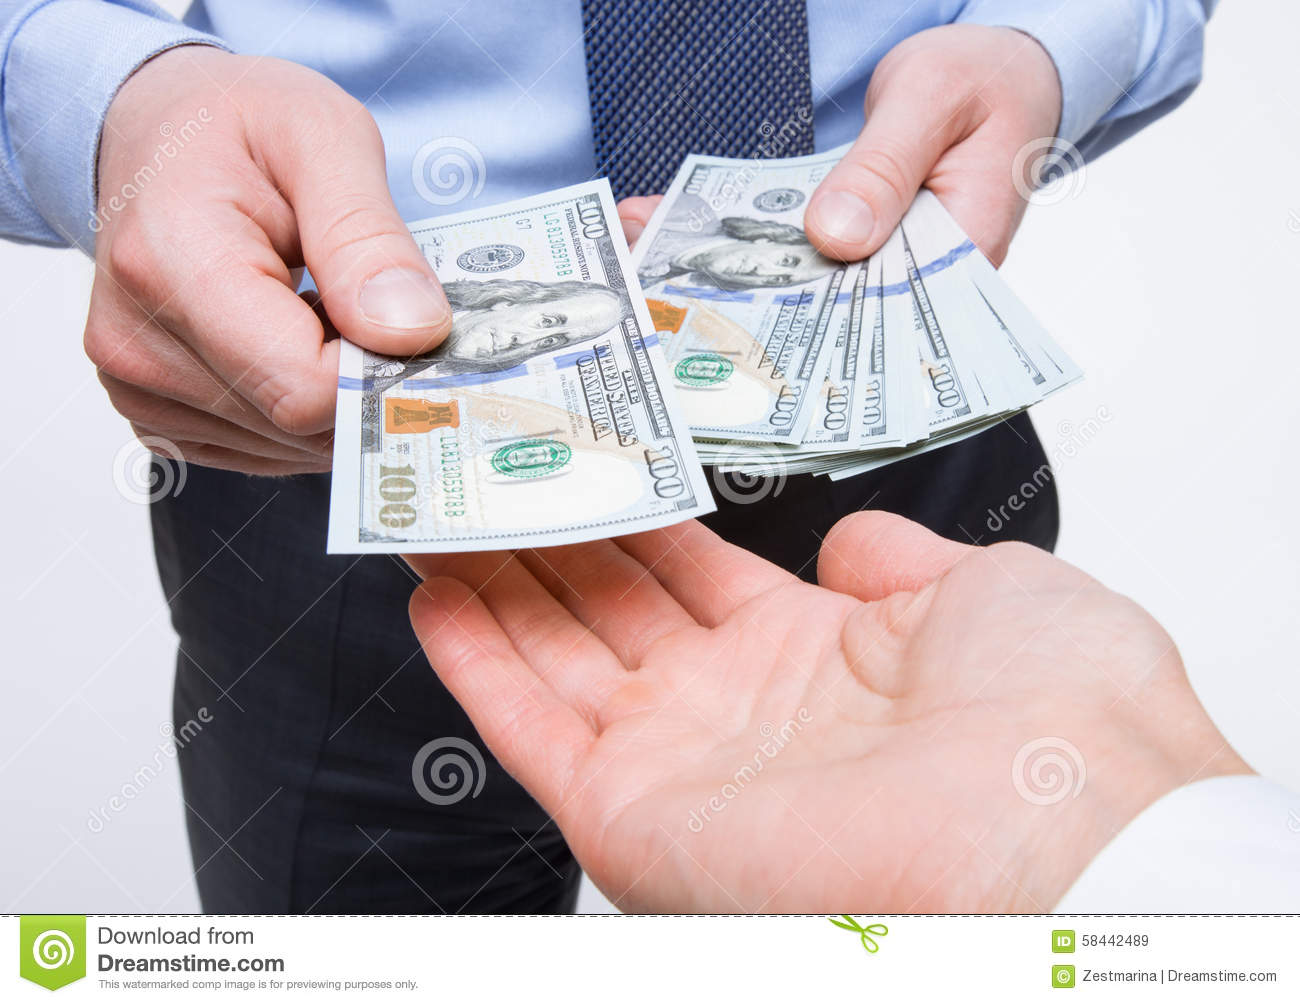 Human hands exchanging money